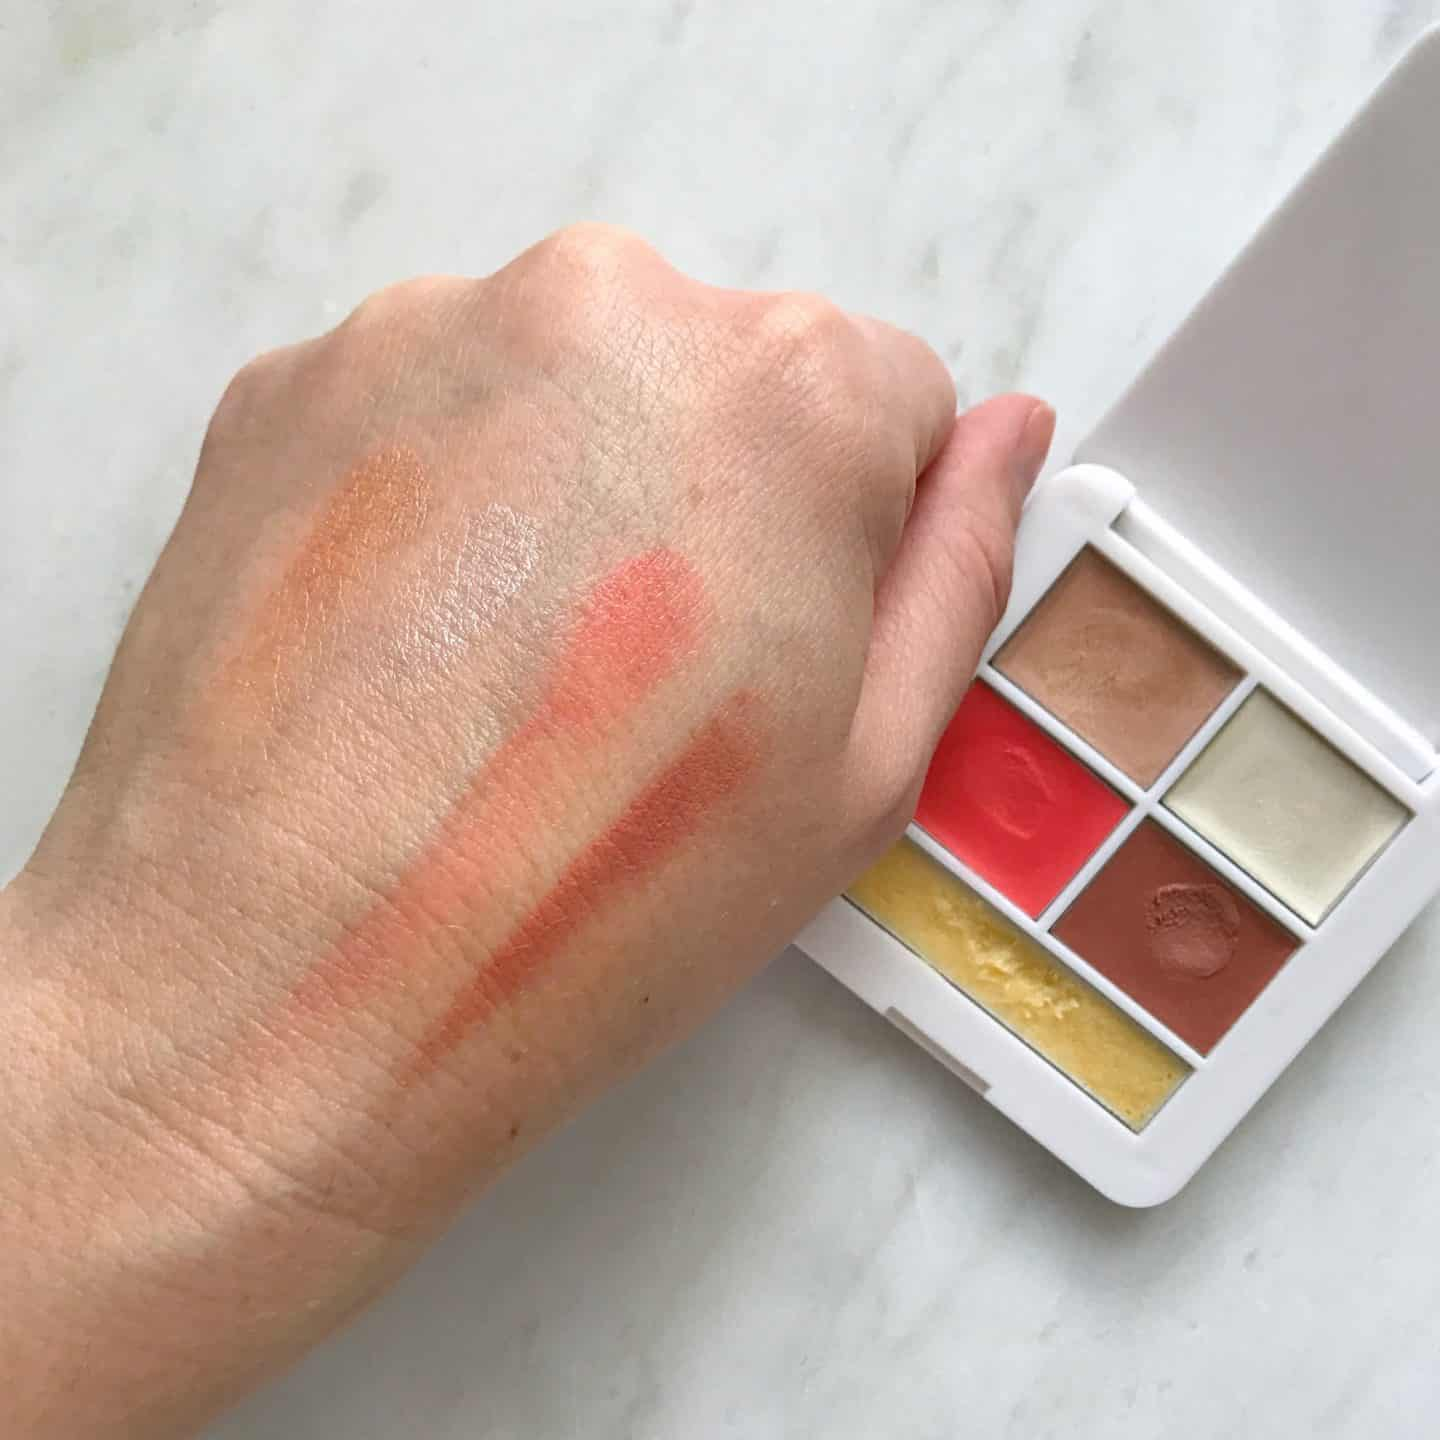 RMS Beauty Signature Set in Mod swatches